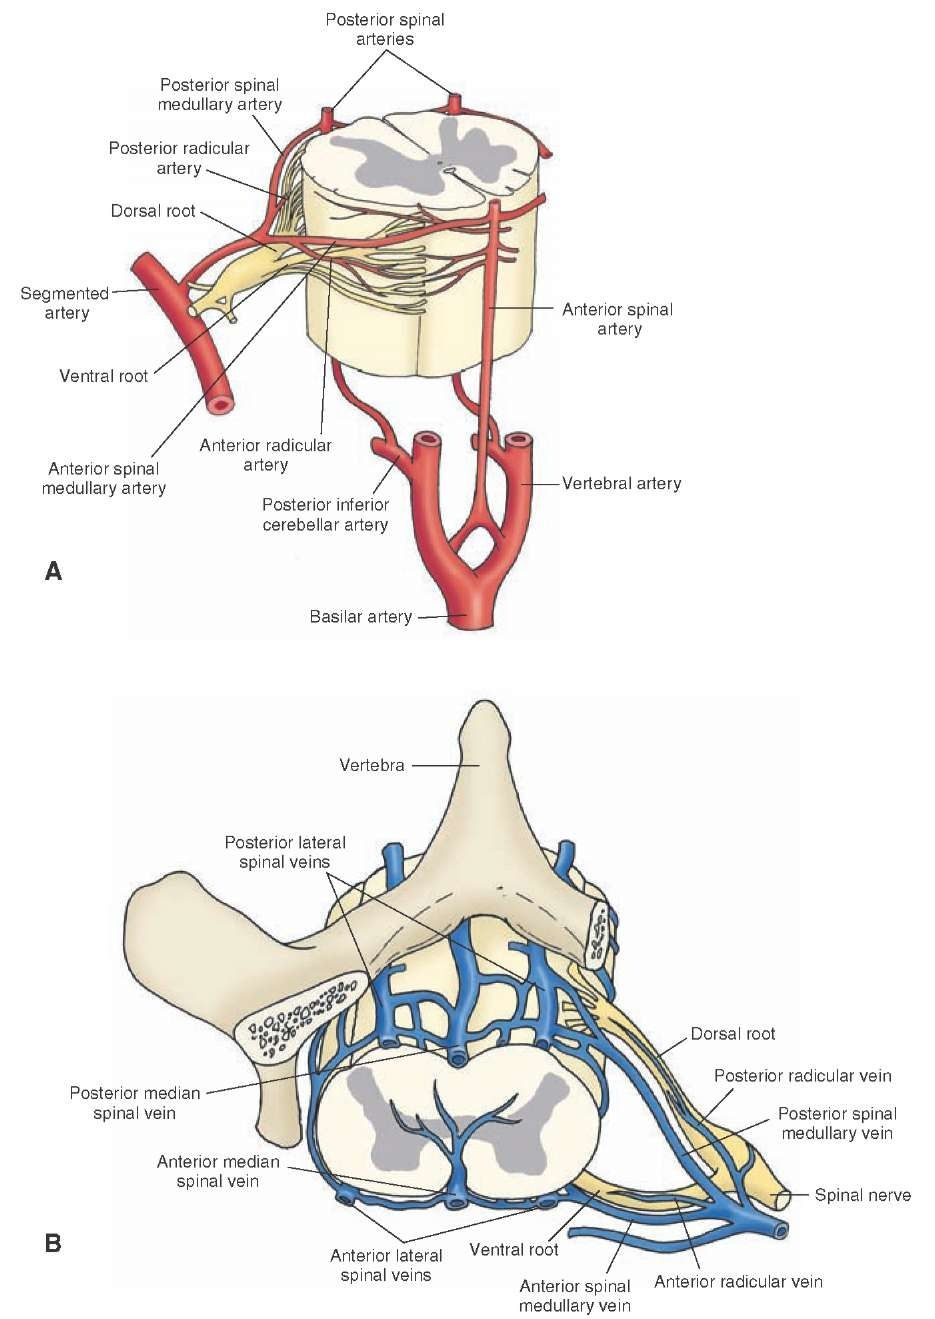 Vascular supply of the spinal cord. (A) Major arteries supplying the ...